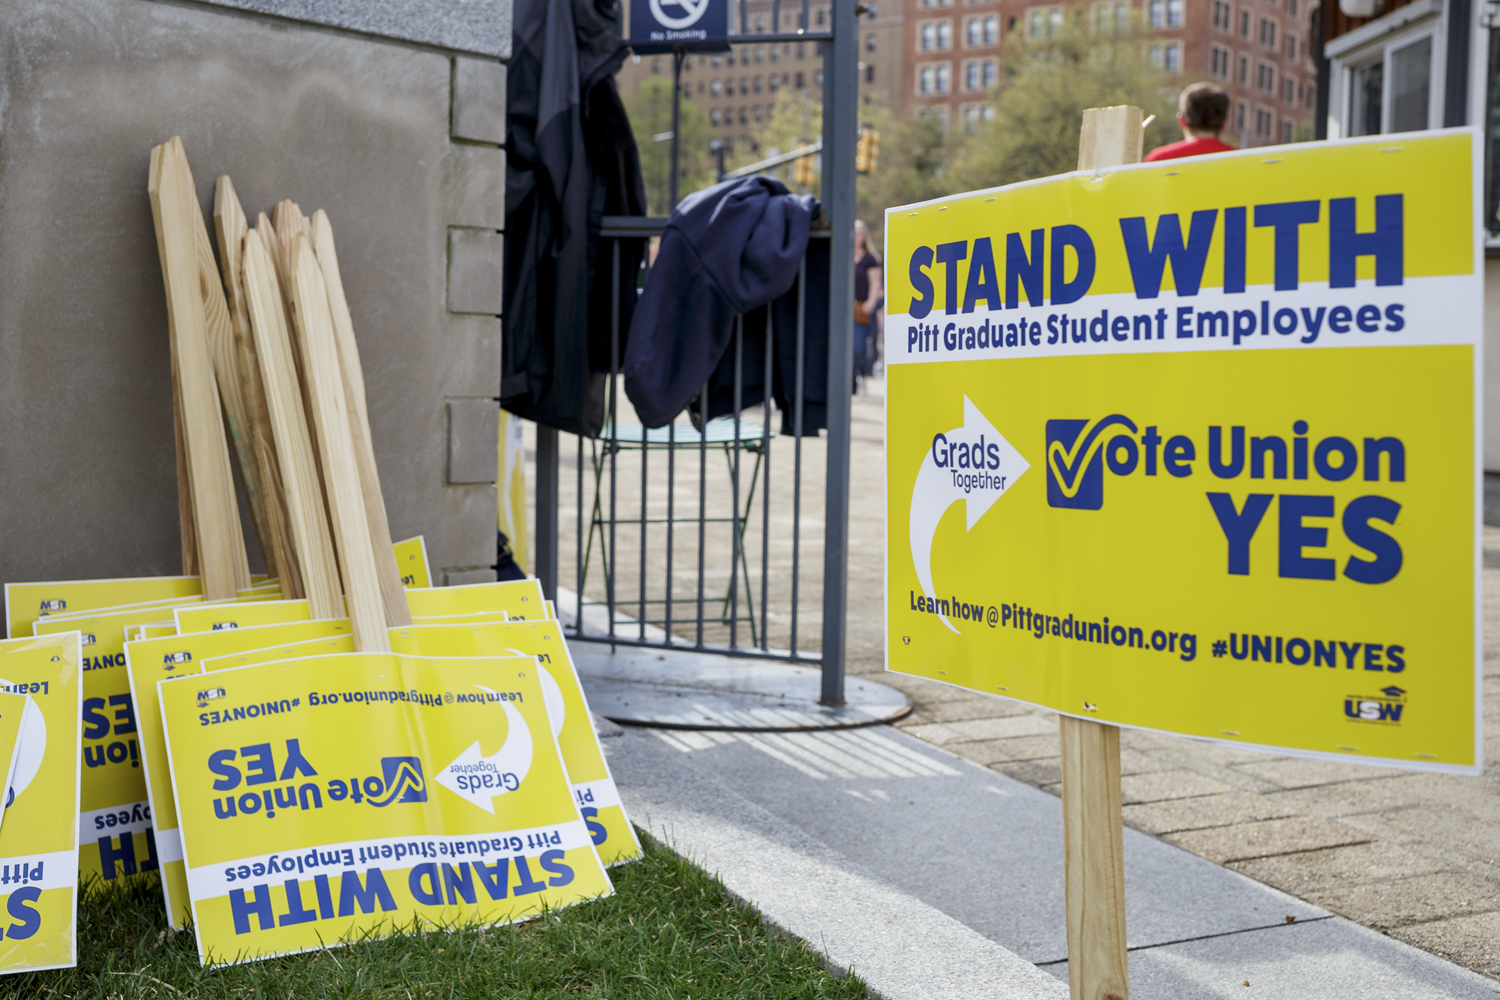 Grad students will vote on whether or not to establish a union between April 15 and 18.